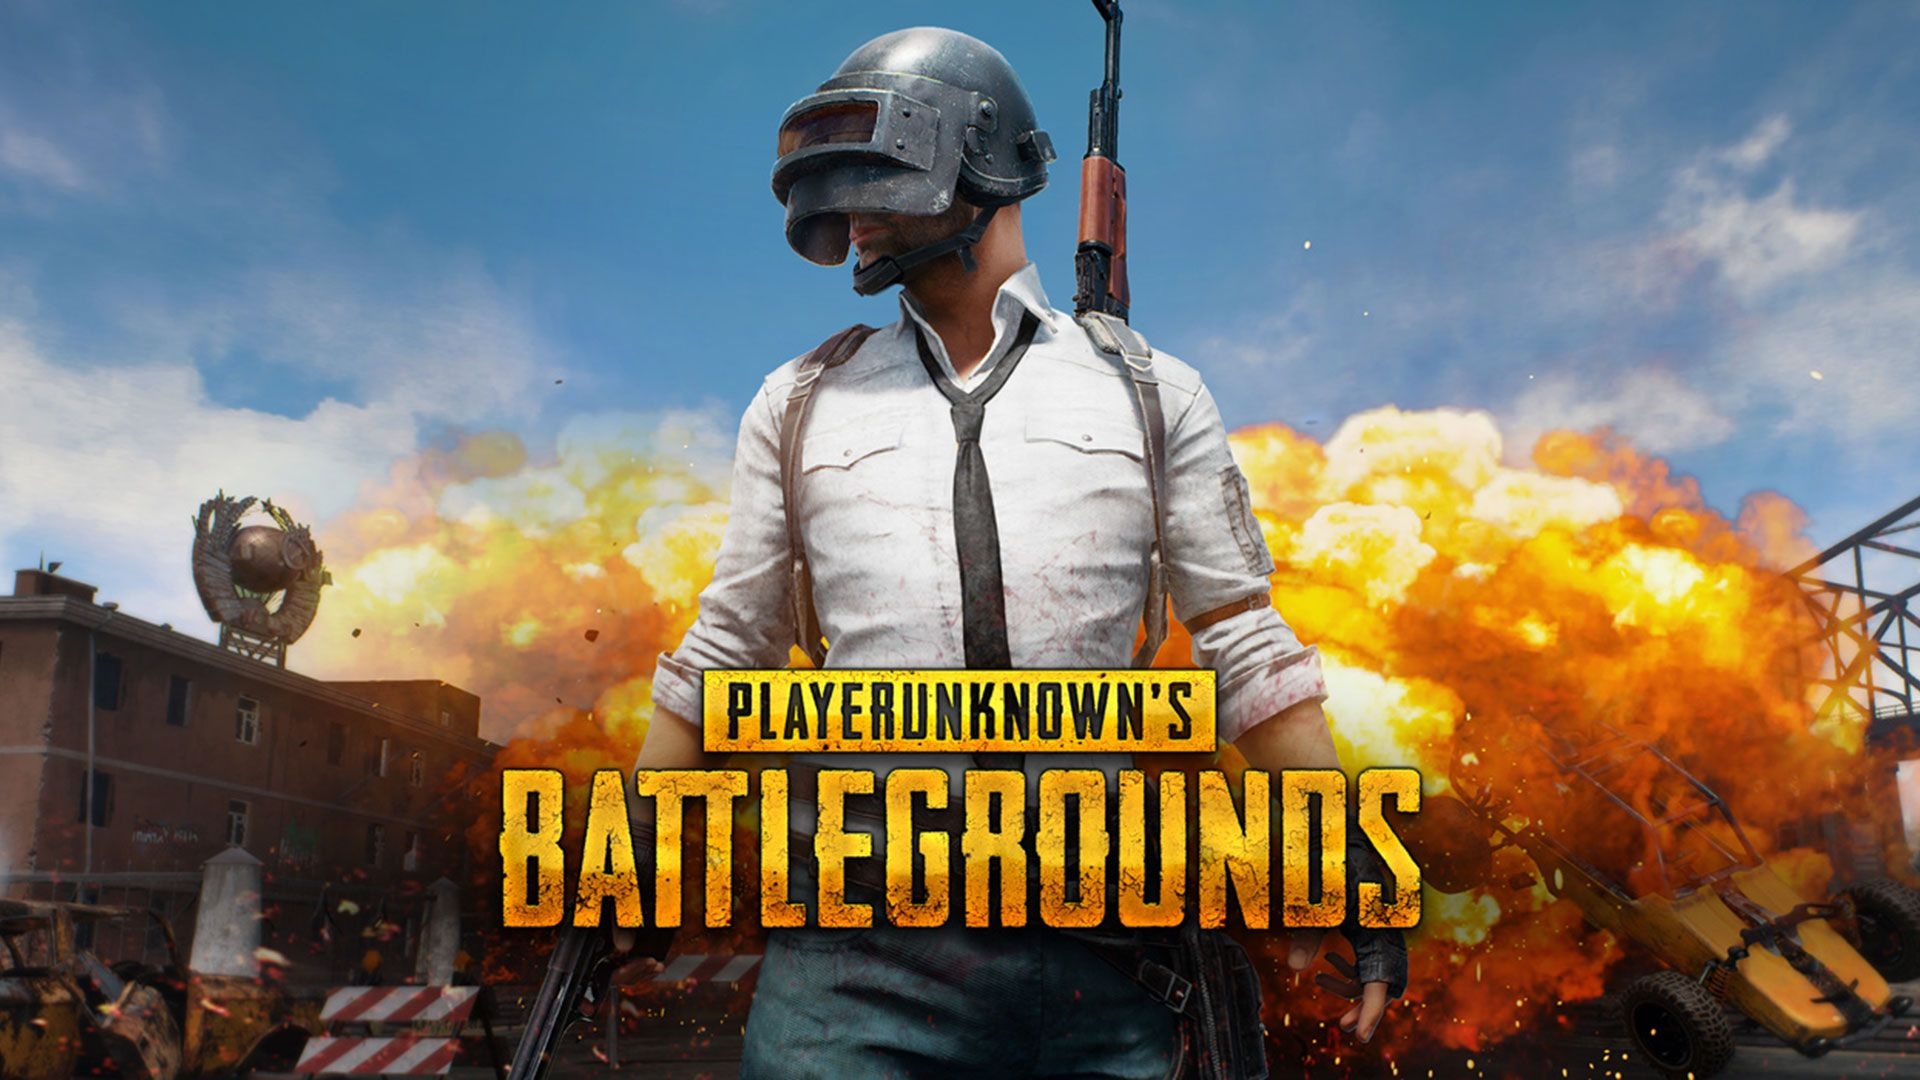 Pubg Wallpaper In Hd: Wallpapers Pubg Full Hd Em Papel De Parede 1080p HD